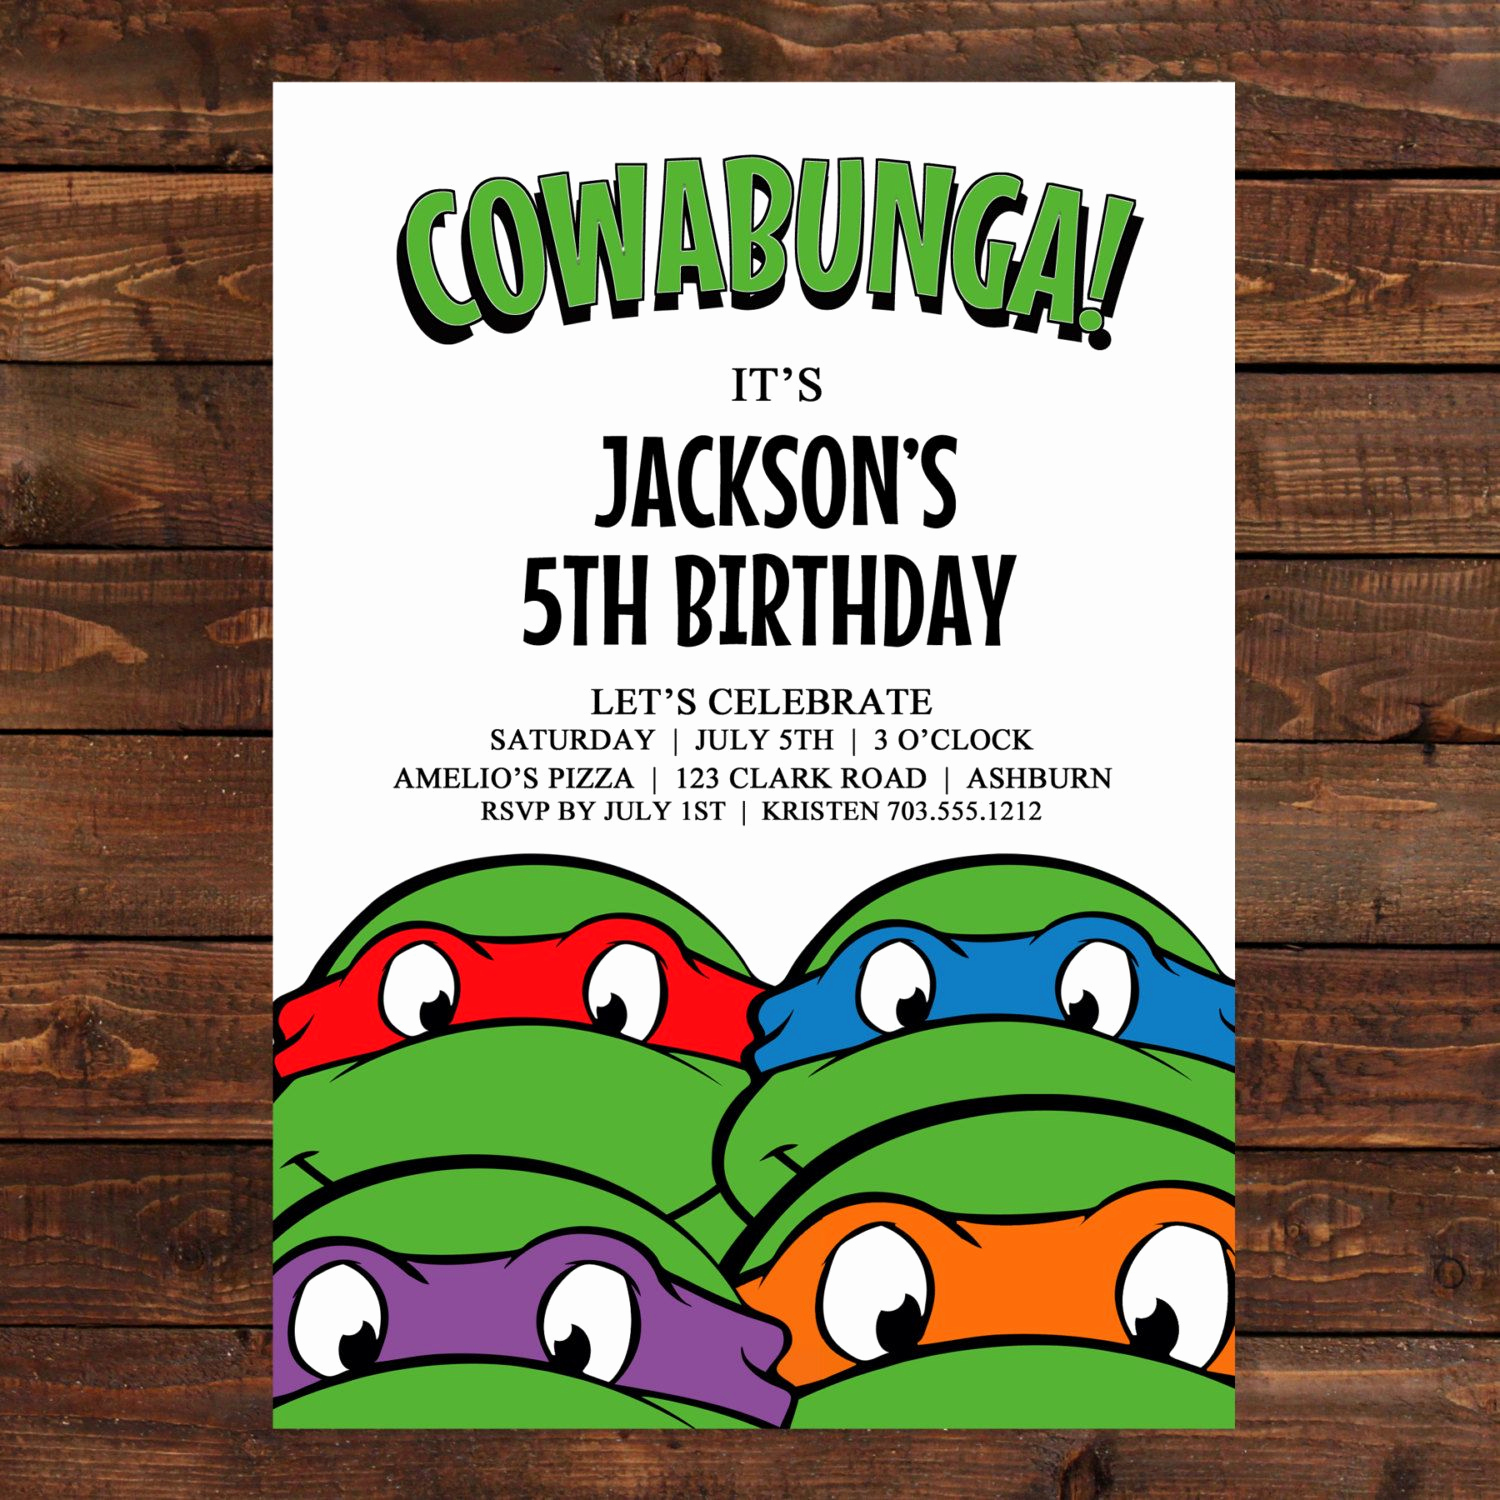 Ninja Turtle Invitation Template Elegant Teenage Mutant Ninja Turtles Birthday Party Invitations